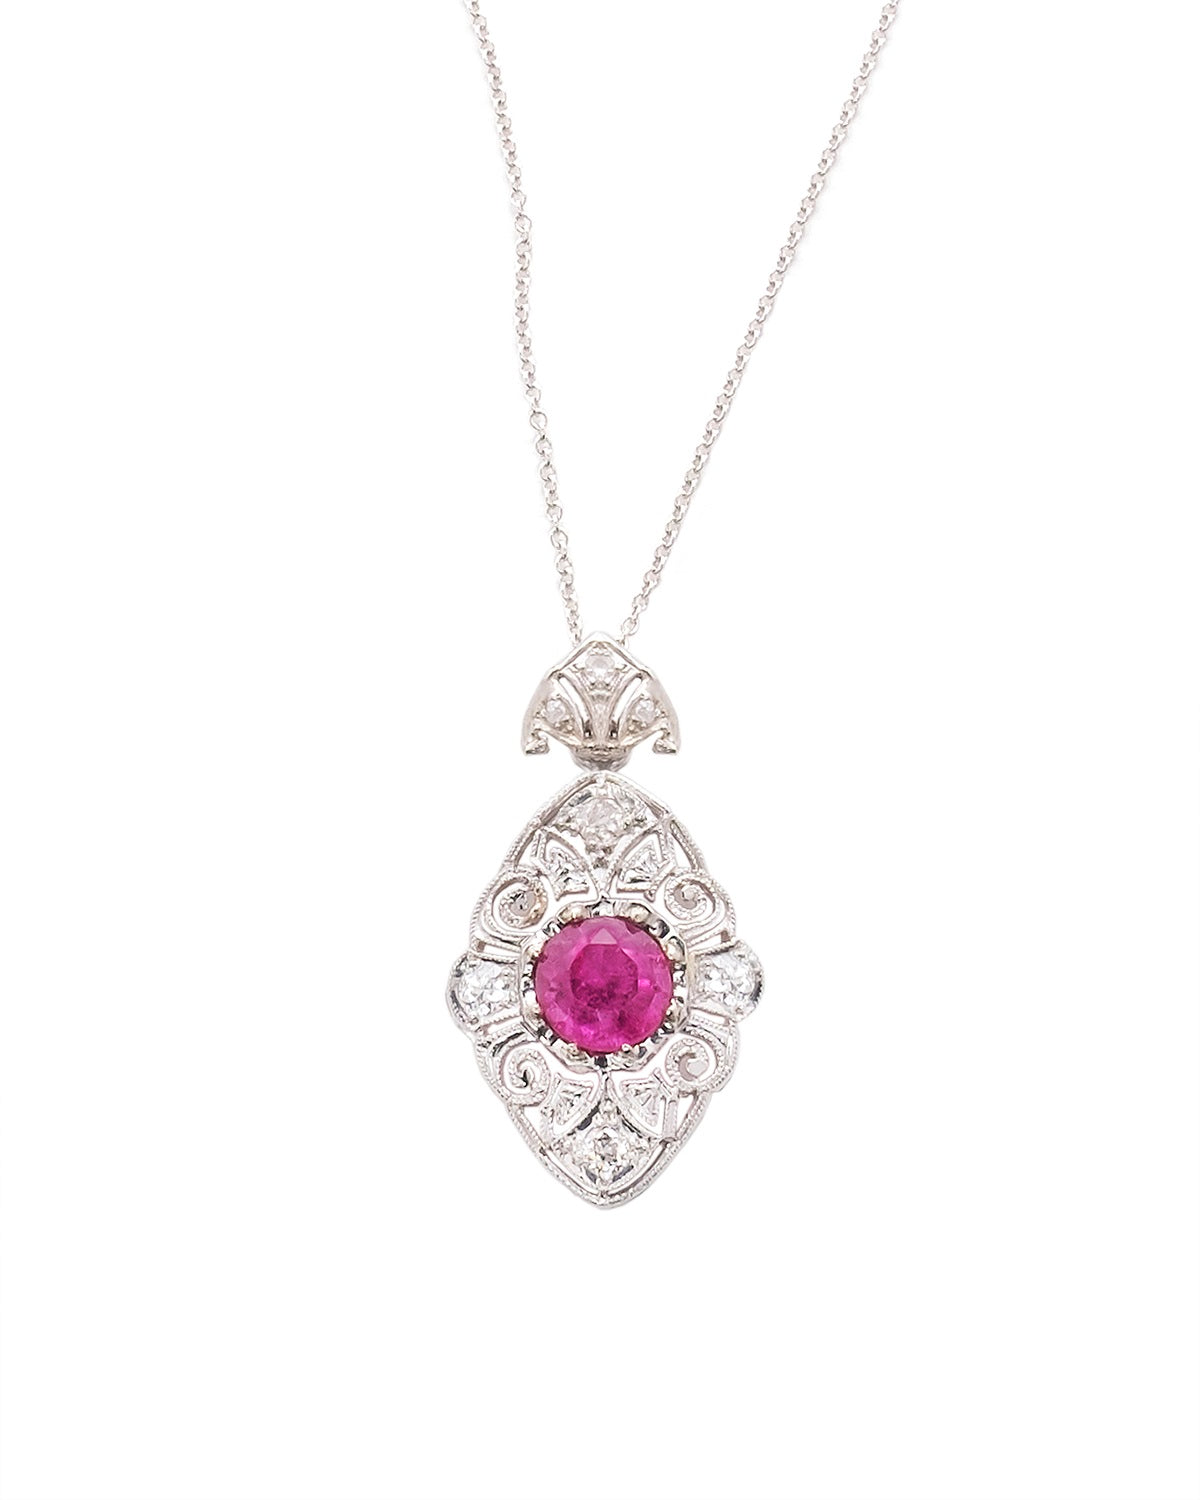 'Cherry Fizz' Art Deco Pendant with Pink Tourmaline.